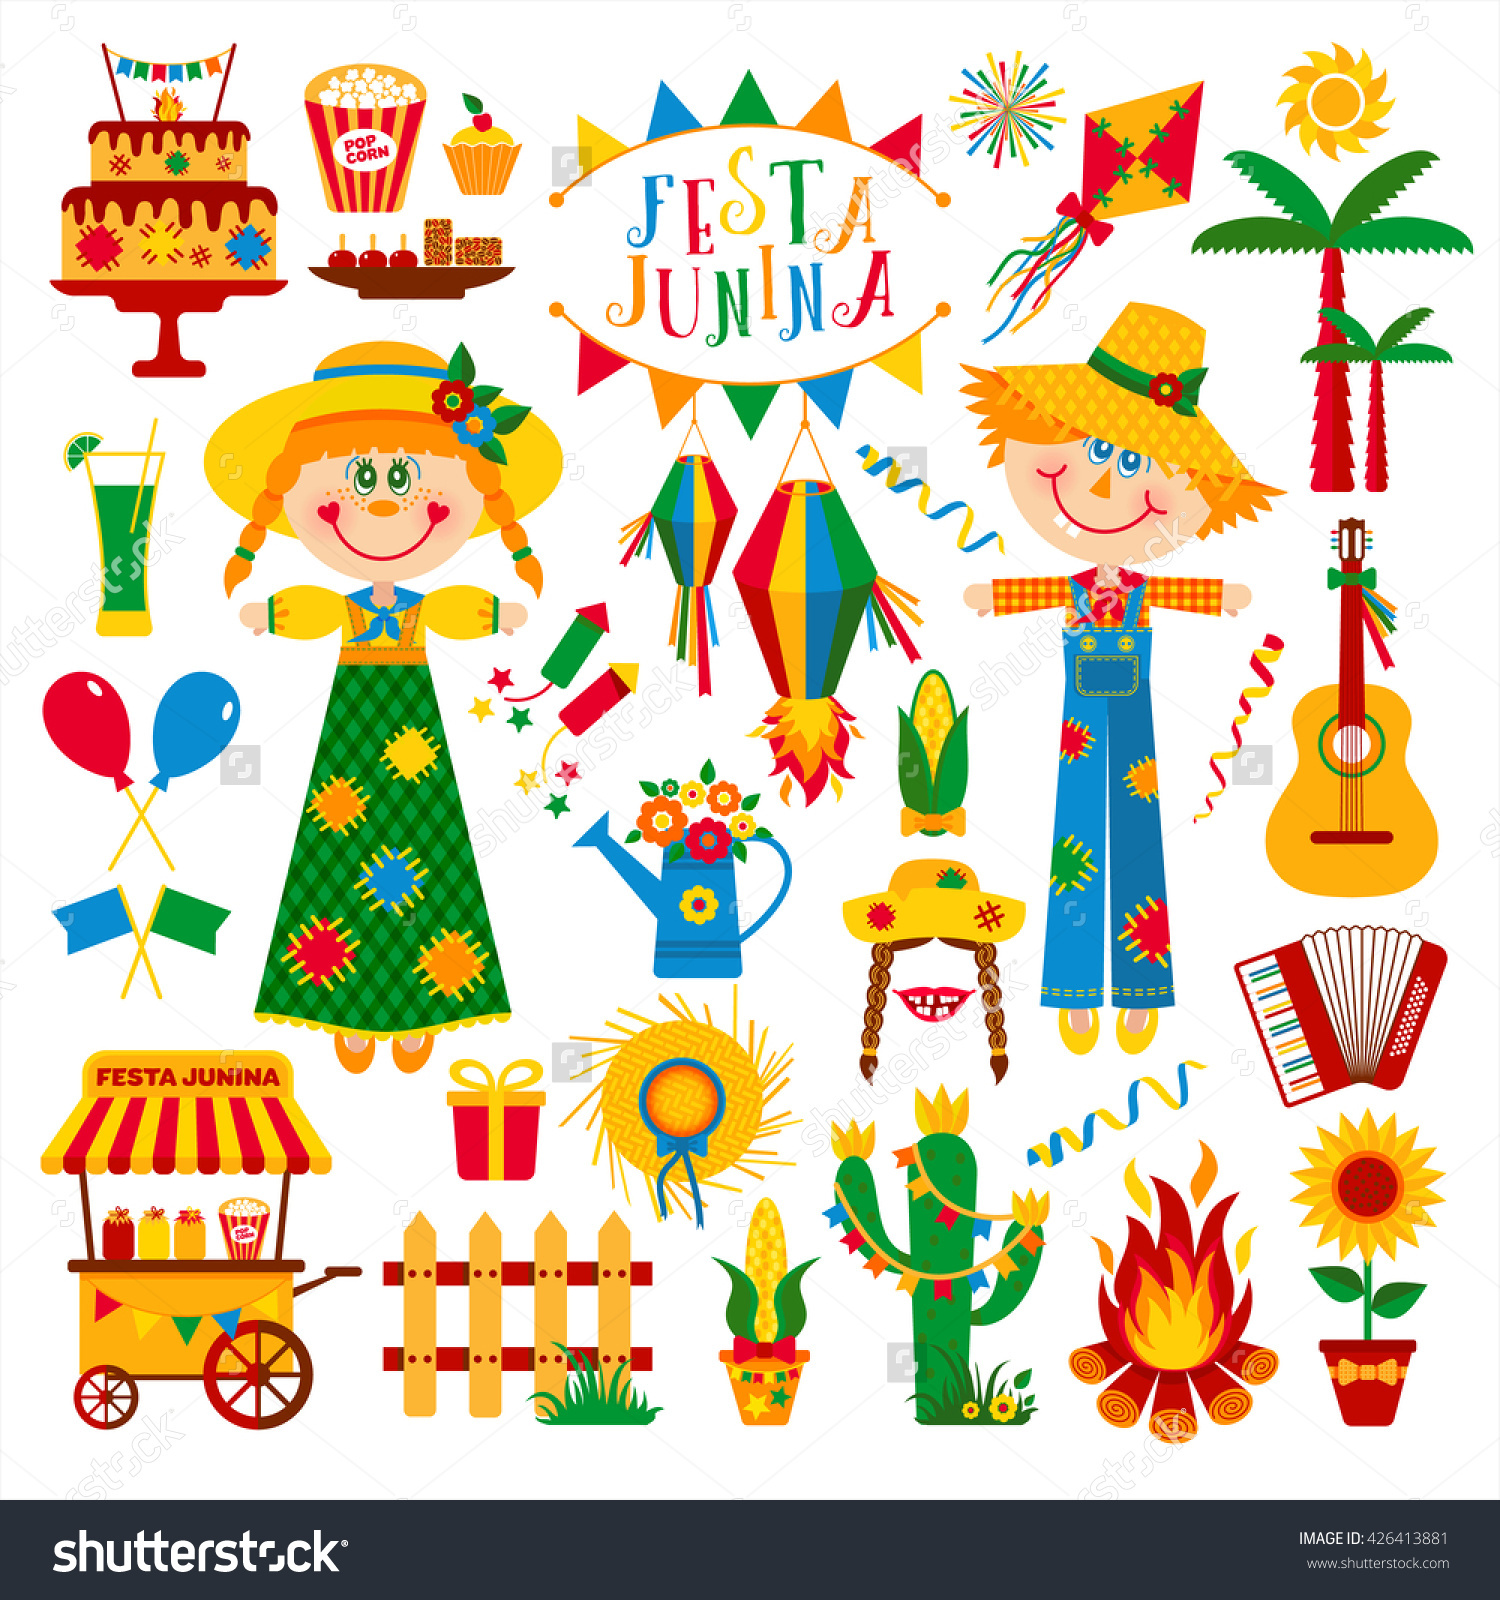 Festa Junina Village Festival Latin America Stock Vector 426413881.